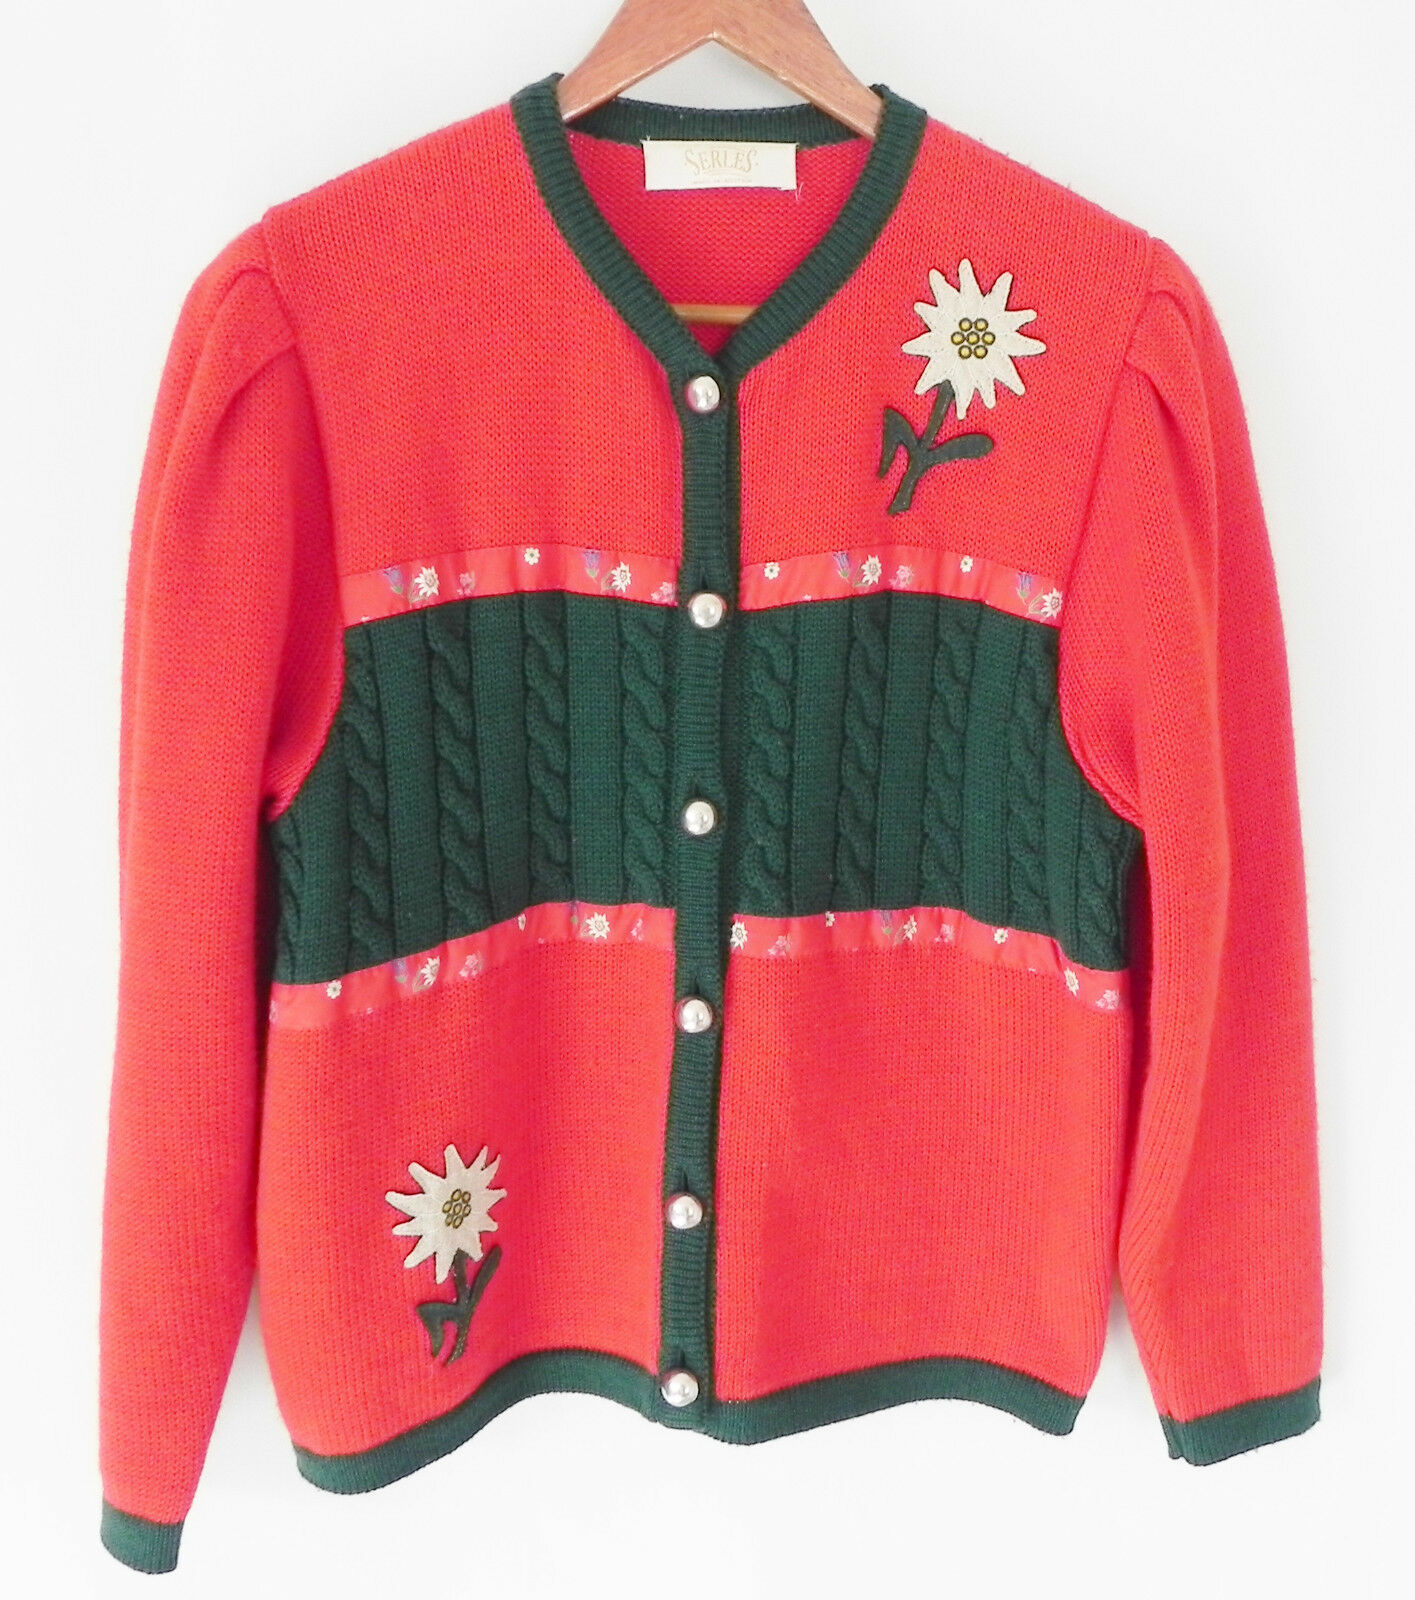 Serles Made in Austria 100% wool Sweater Cardigan Christmas Red,Green SizeM L